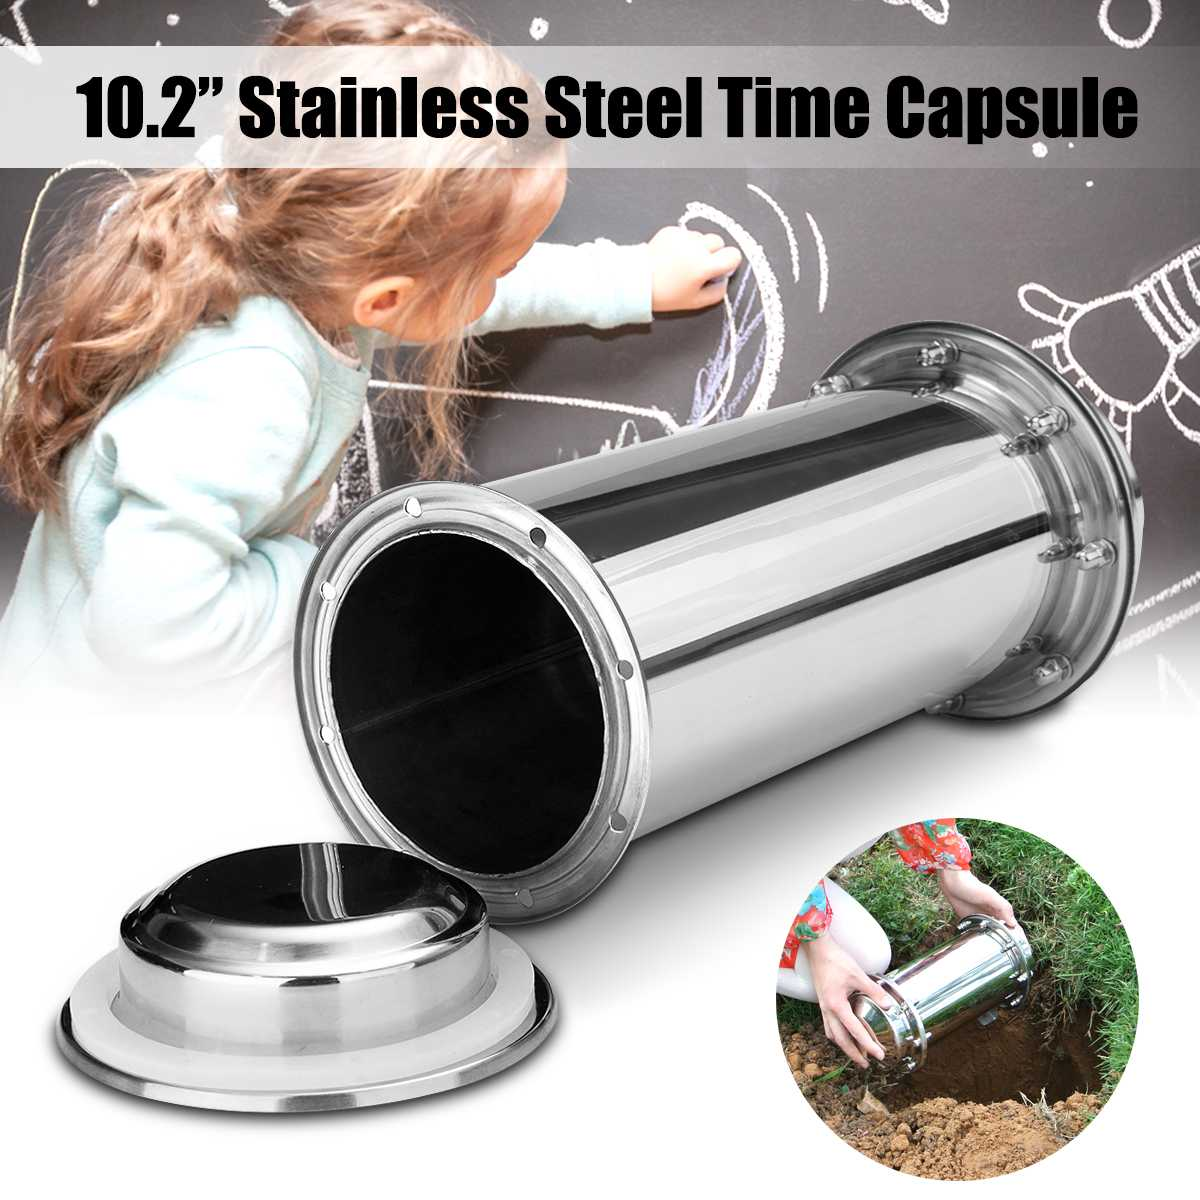 Stainless Steel Time Capsule Waterproof Lock Container Storage Future Gift length 26cm Diameter 10cm Stainless Steel Time Capsule Waterproof Lock Container Storage Future Gift length 26cm Diameter 10cm